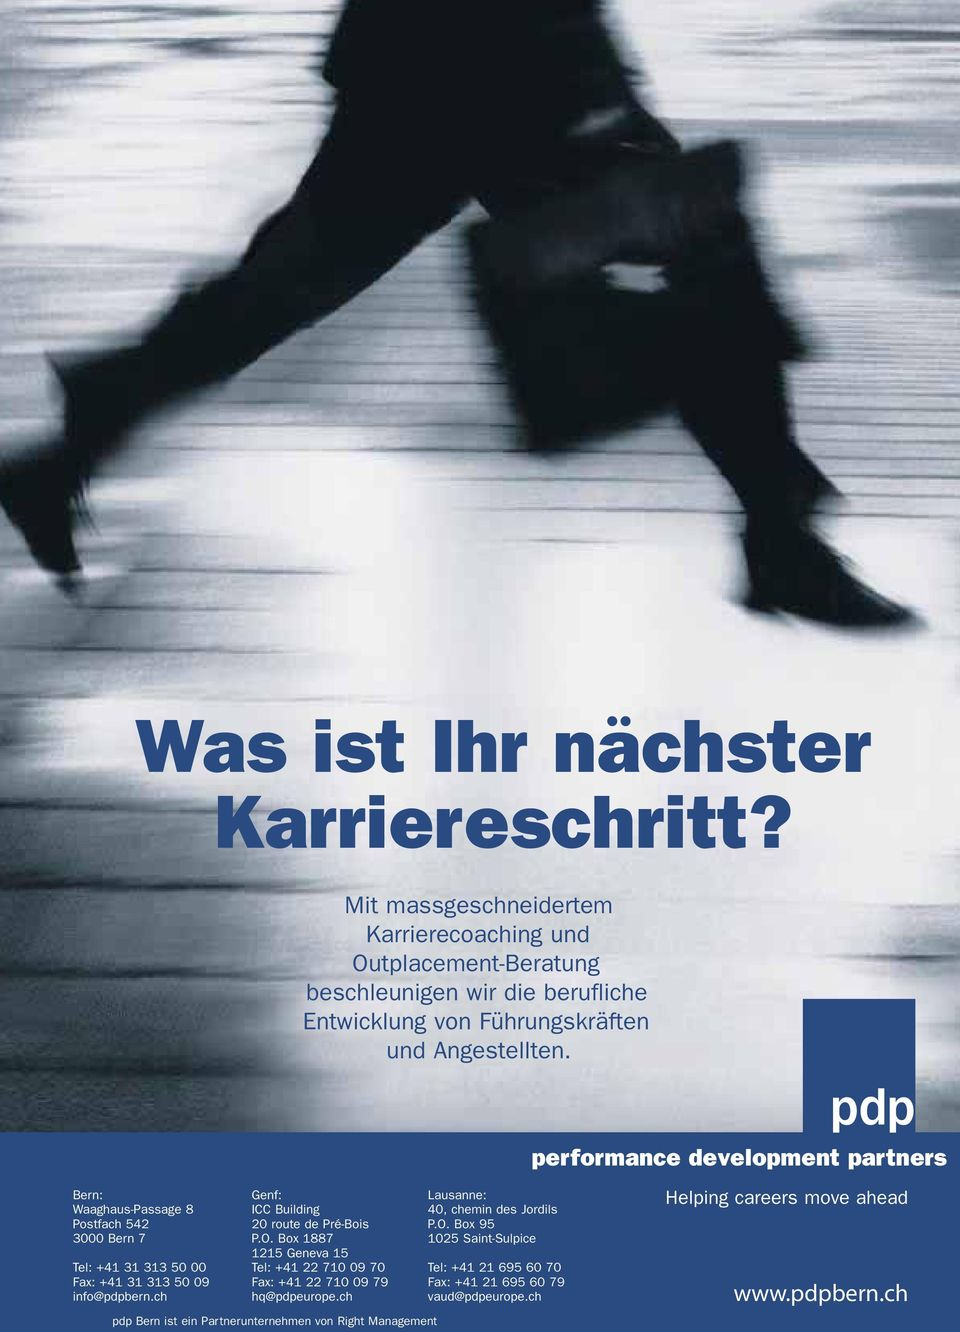 performance development partners Bern: Waaghaus-Passage 8 Postfach 542 3000 Bern 7 Tel: +41 31 313 50 00 Fax: +41 31 313 50 09 info@pdpbern.